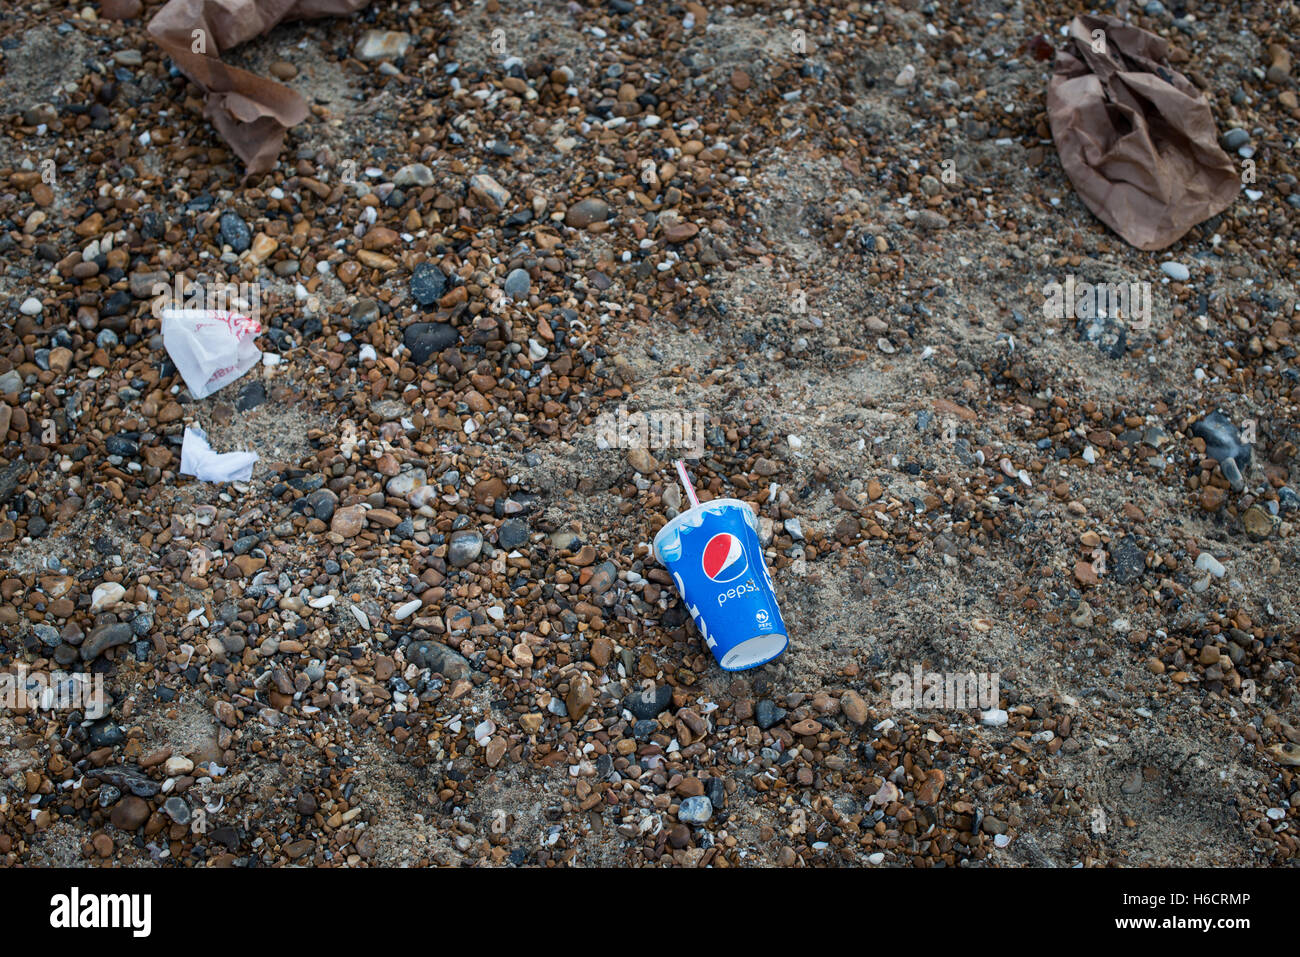 Discarded fast food packaging and a Pepsi plastic cup littering a beach. - Stock Image